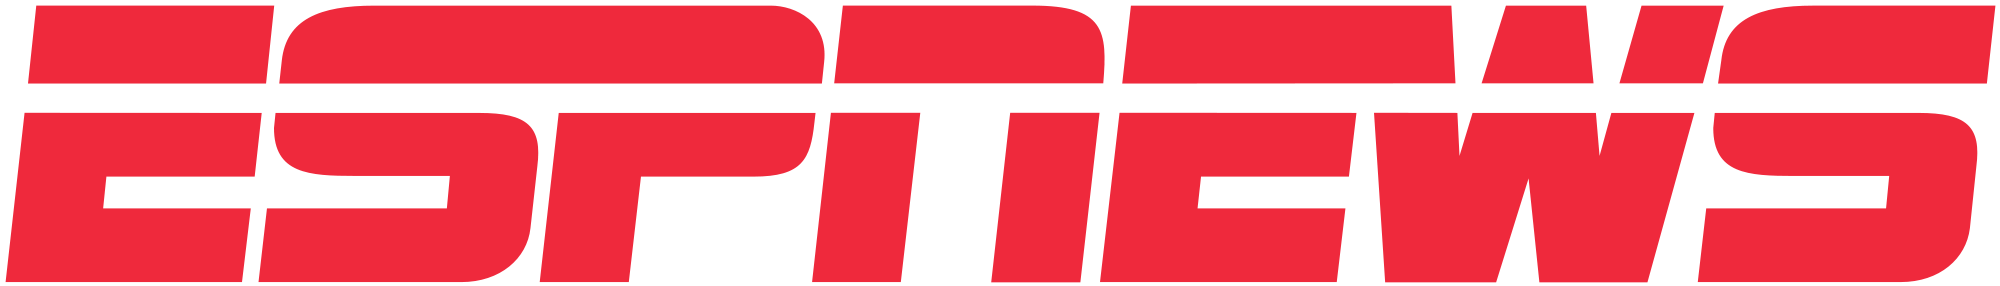 File:Espnnews.png - Wikimedia Commons